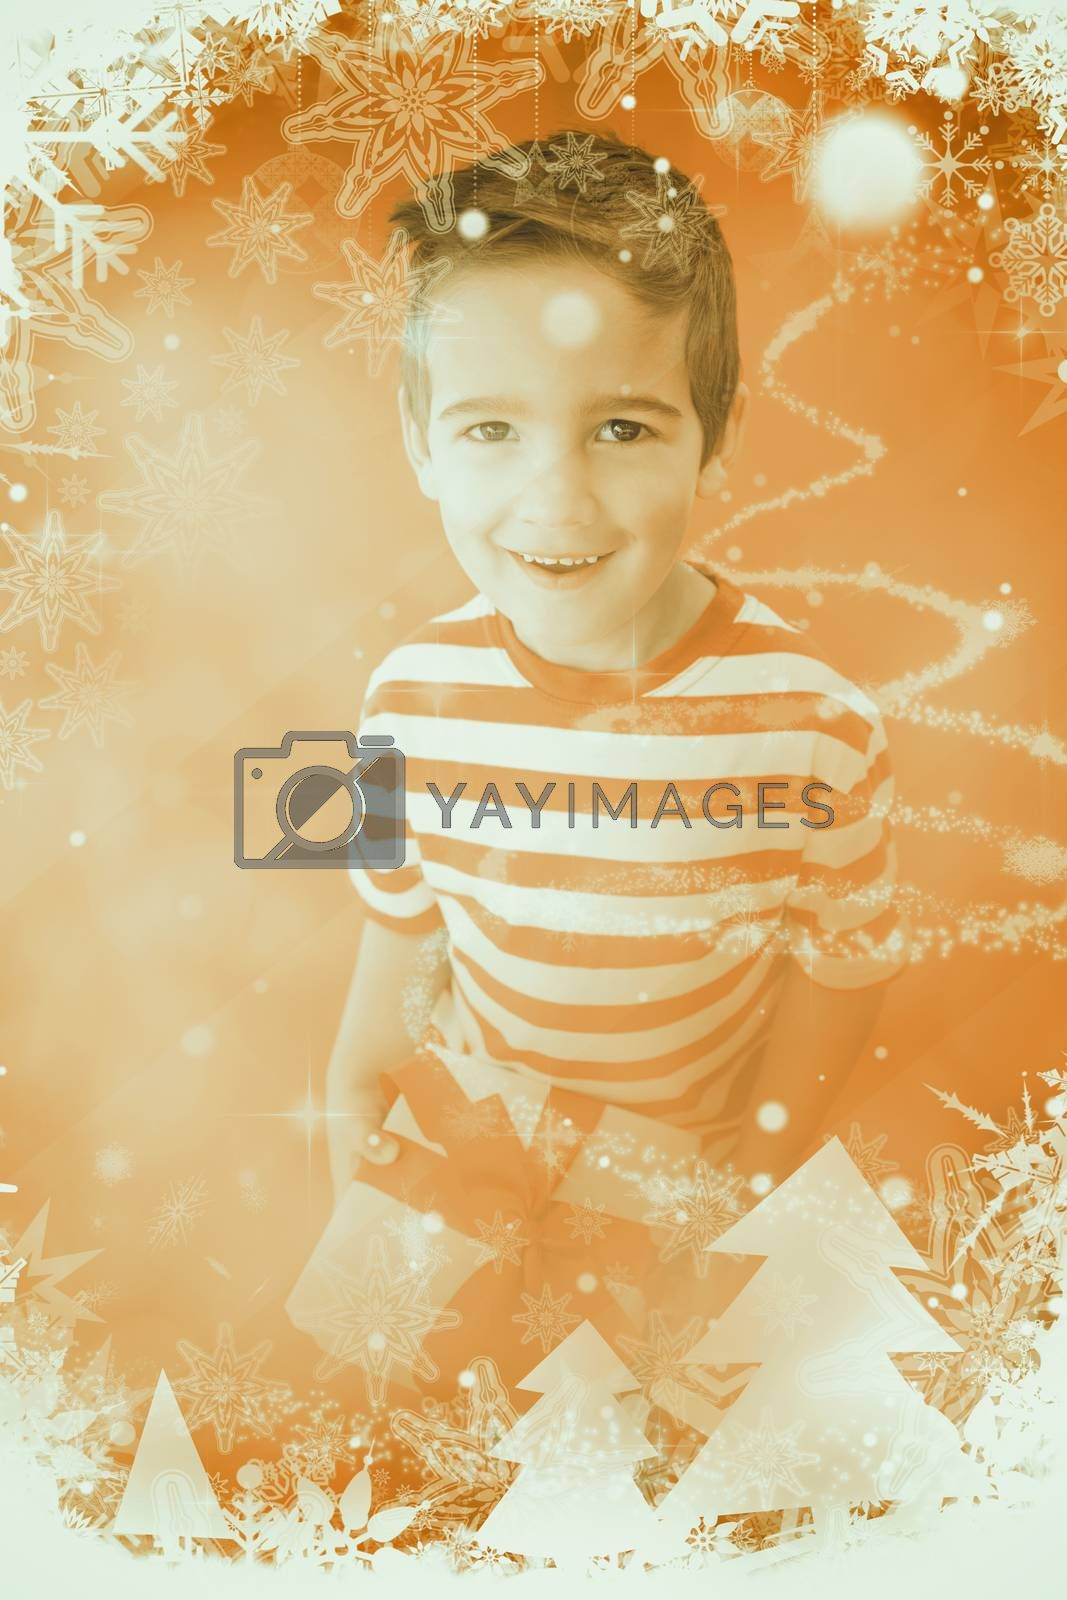 Festive little boy holding a gift against glittering christmas tree design